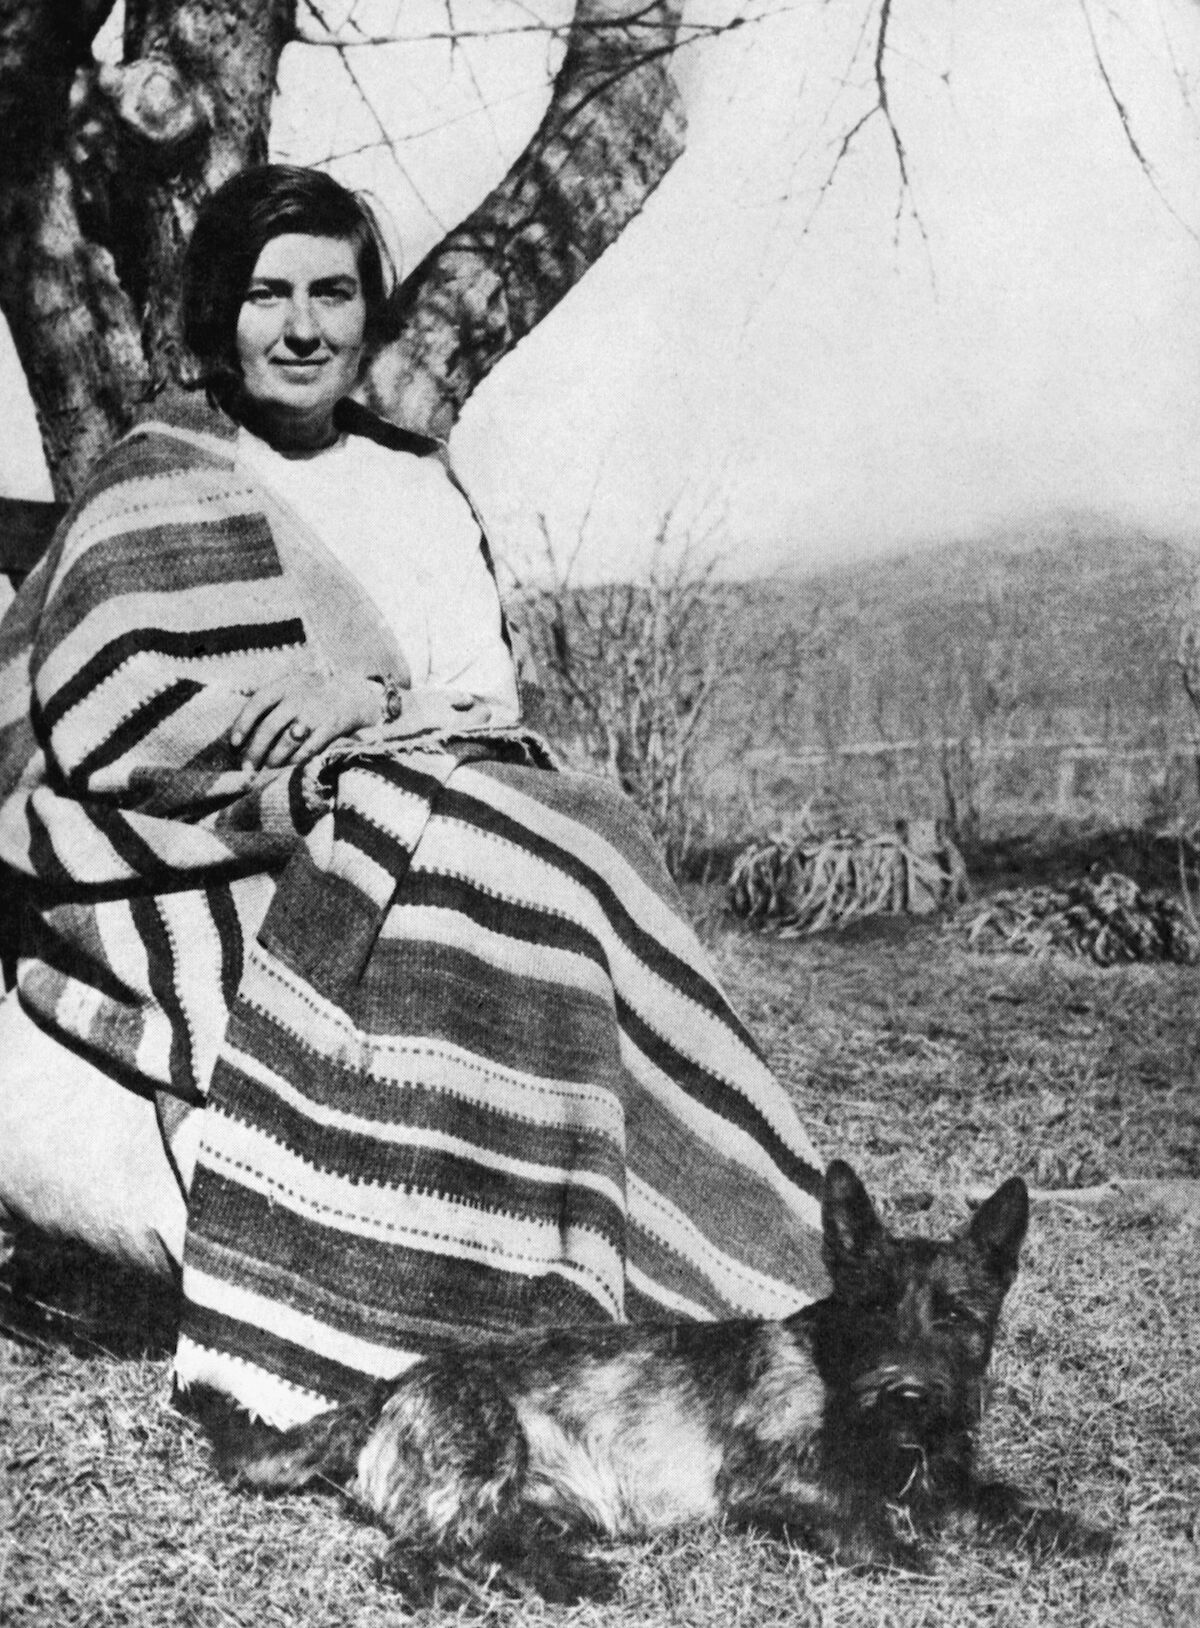 Portrait of Mabel Dodge Luhan (undated). Courtesy of Bettmann/Contributor via Getty.